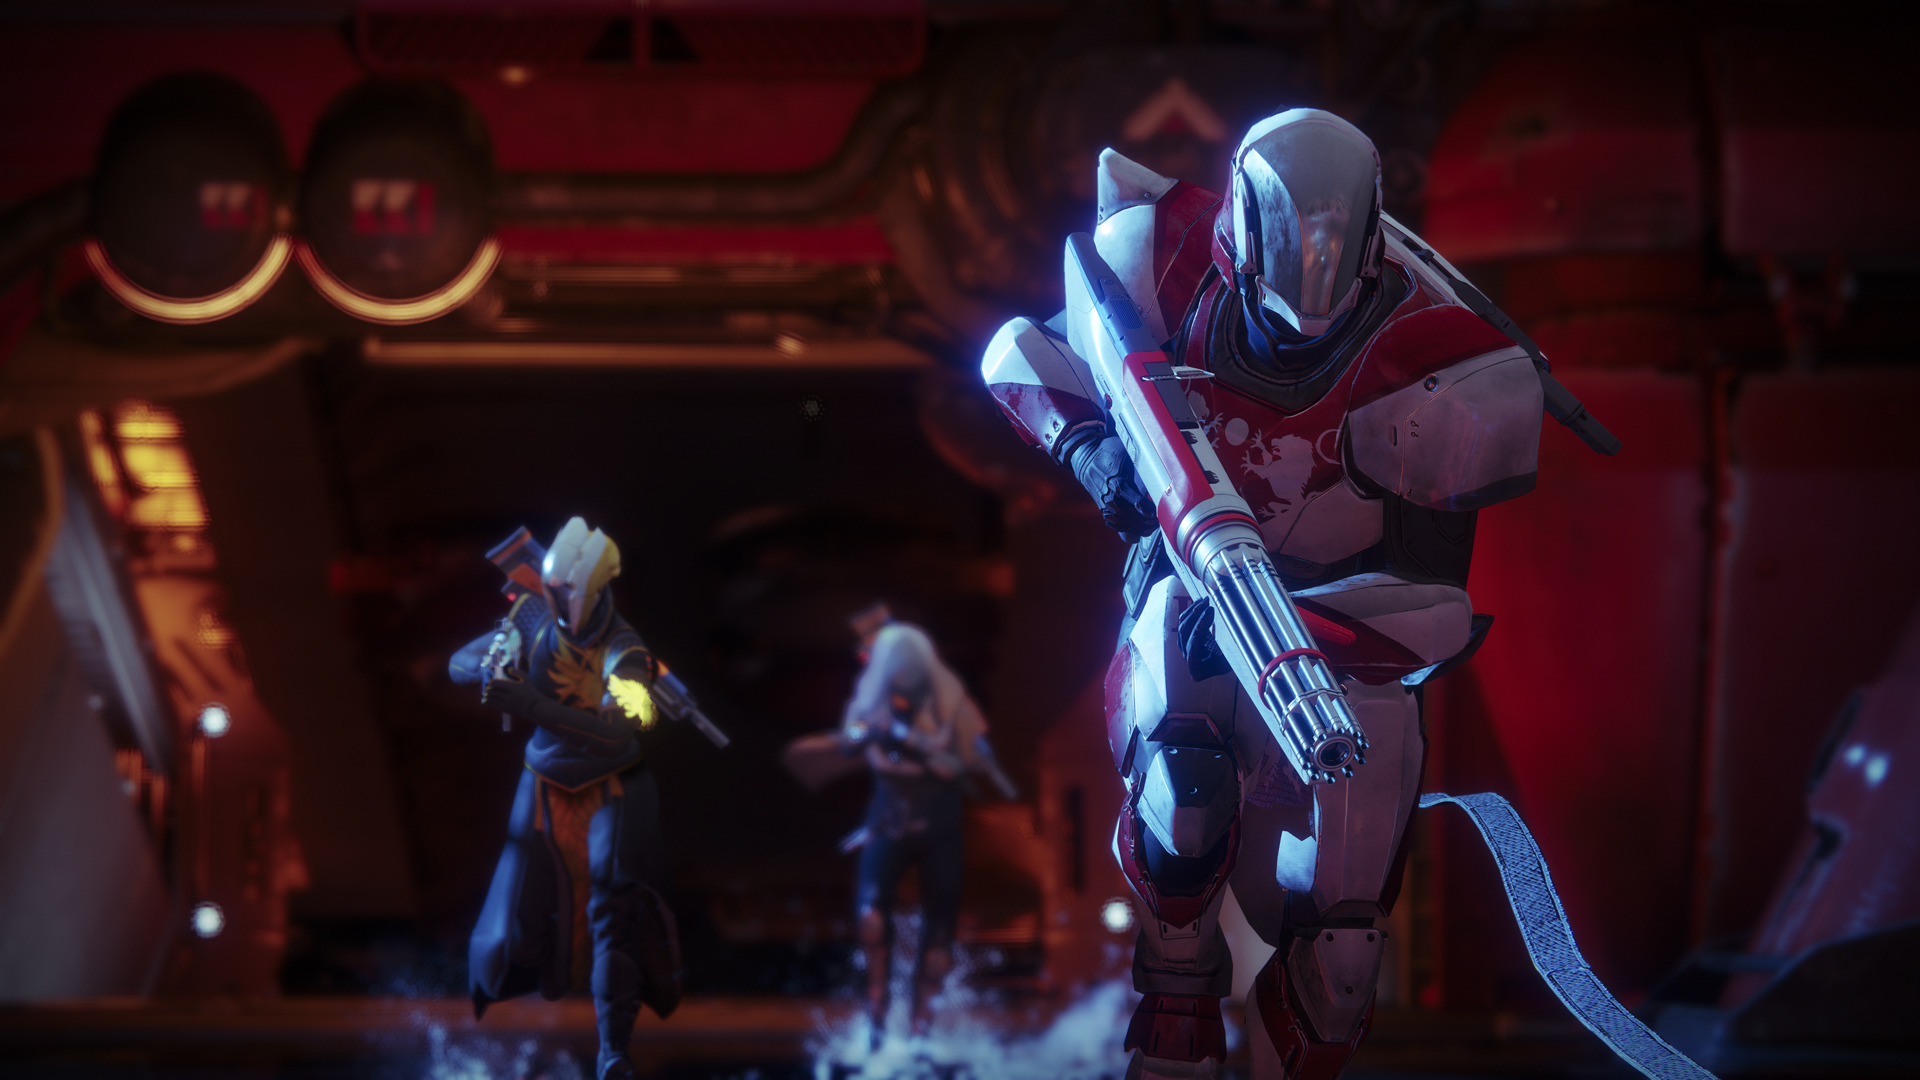 Destiny 2 Nightfall Rewards: Exclusive Weapons and Gear